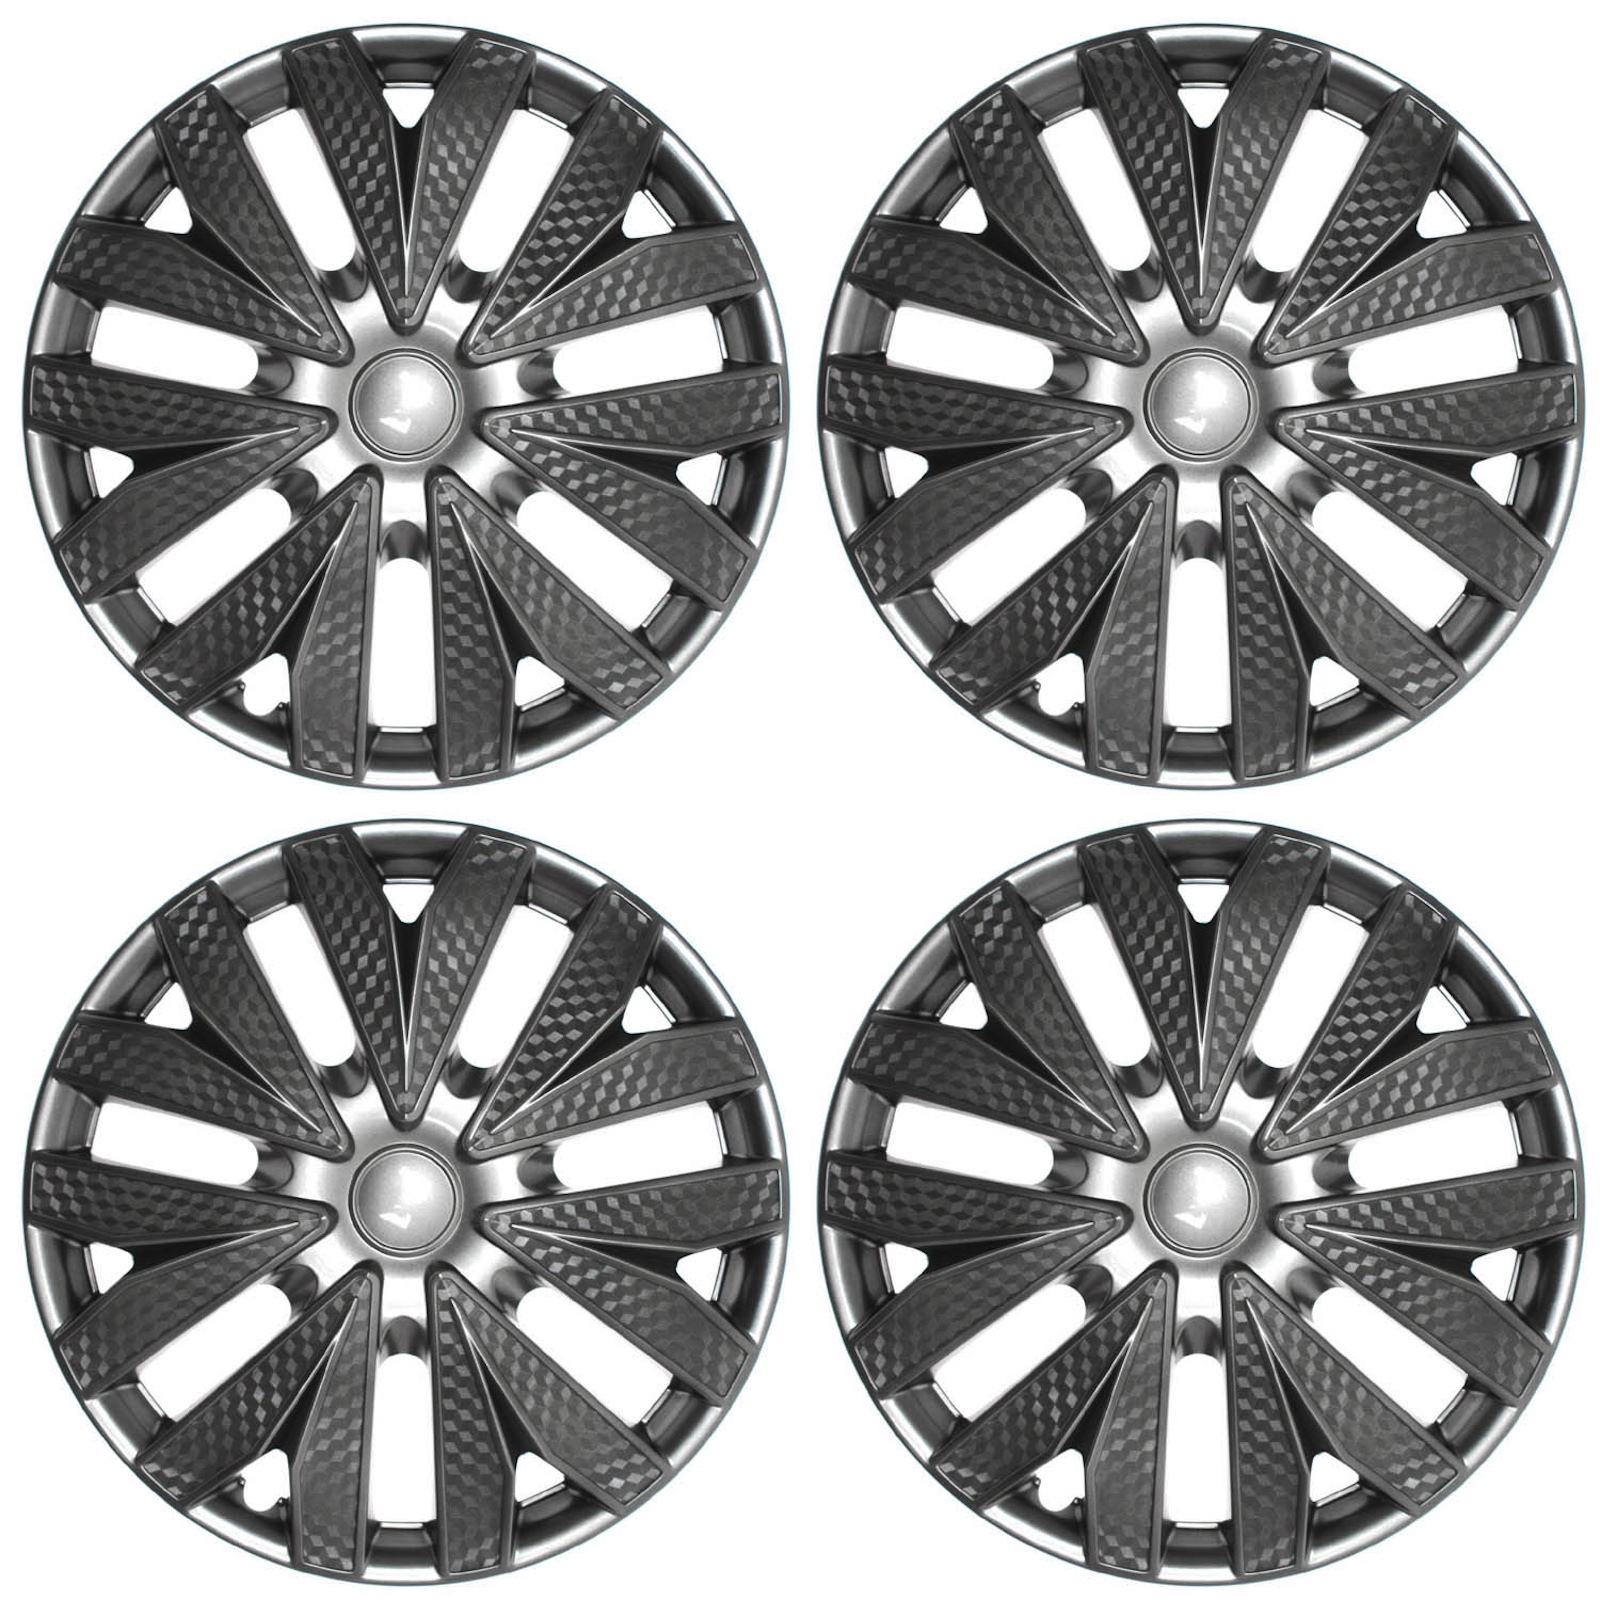 4pc hub cap carbon fiber gray gunmetal charcoal silver 15 wheel cover caps